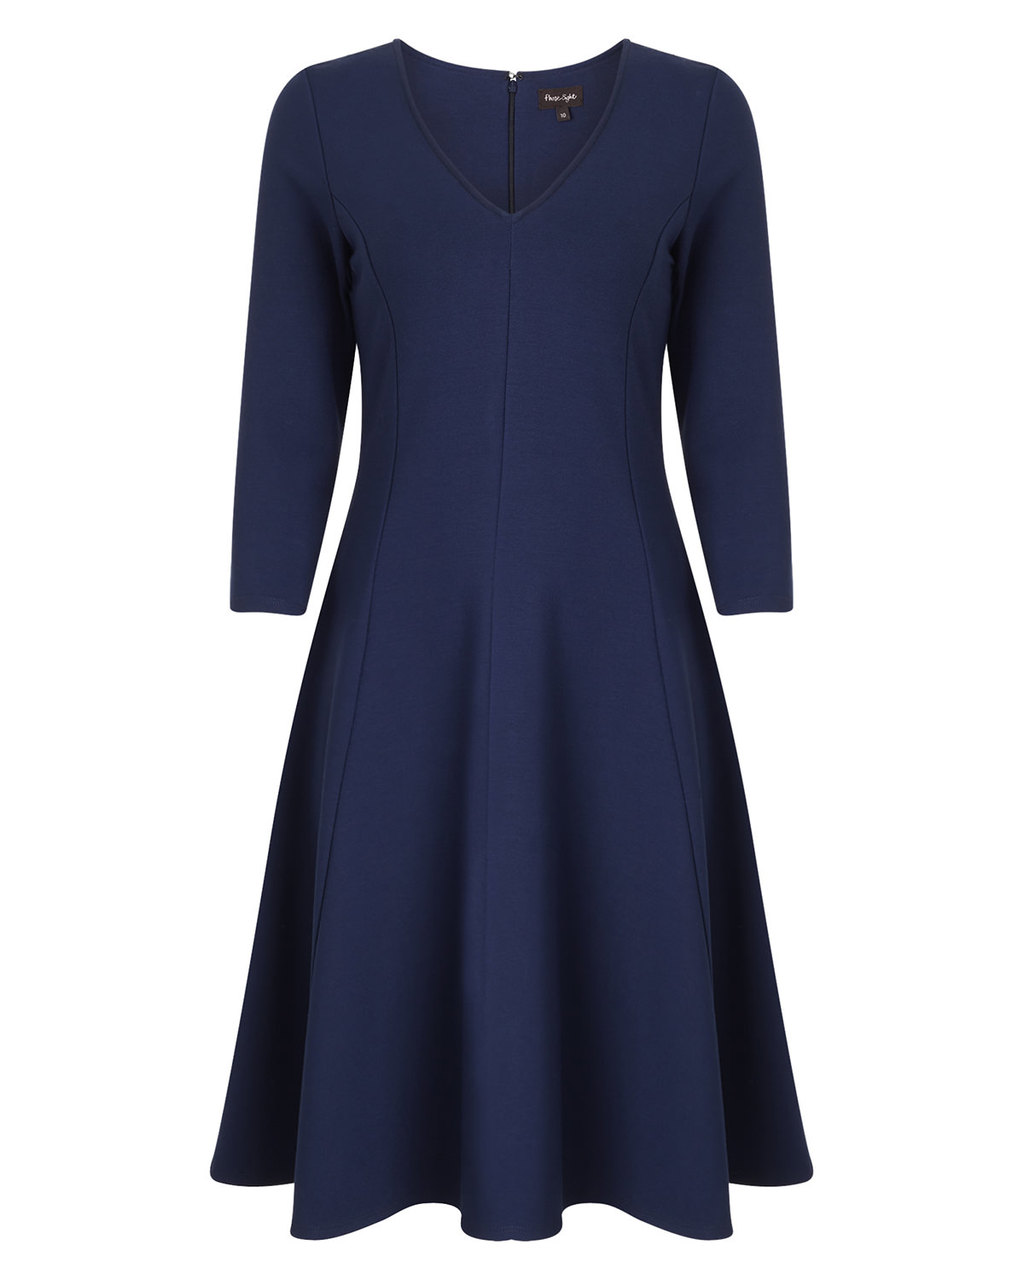 Sienna Skater Dress - neckline: v-neck; pattern: plain; predominant colour: navy; occasions: work, occasion; length: on the knee; fit: fitted at waist & bust; style: fit & flare; fibres: polyester/polyamide - mix; sleeve length: 3/4 length; sleeve style: standard; pattern type: fabric; texture group: other - light to midweight; season: a/w 2015; wardrobe: investment